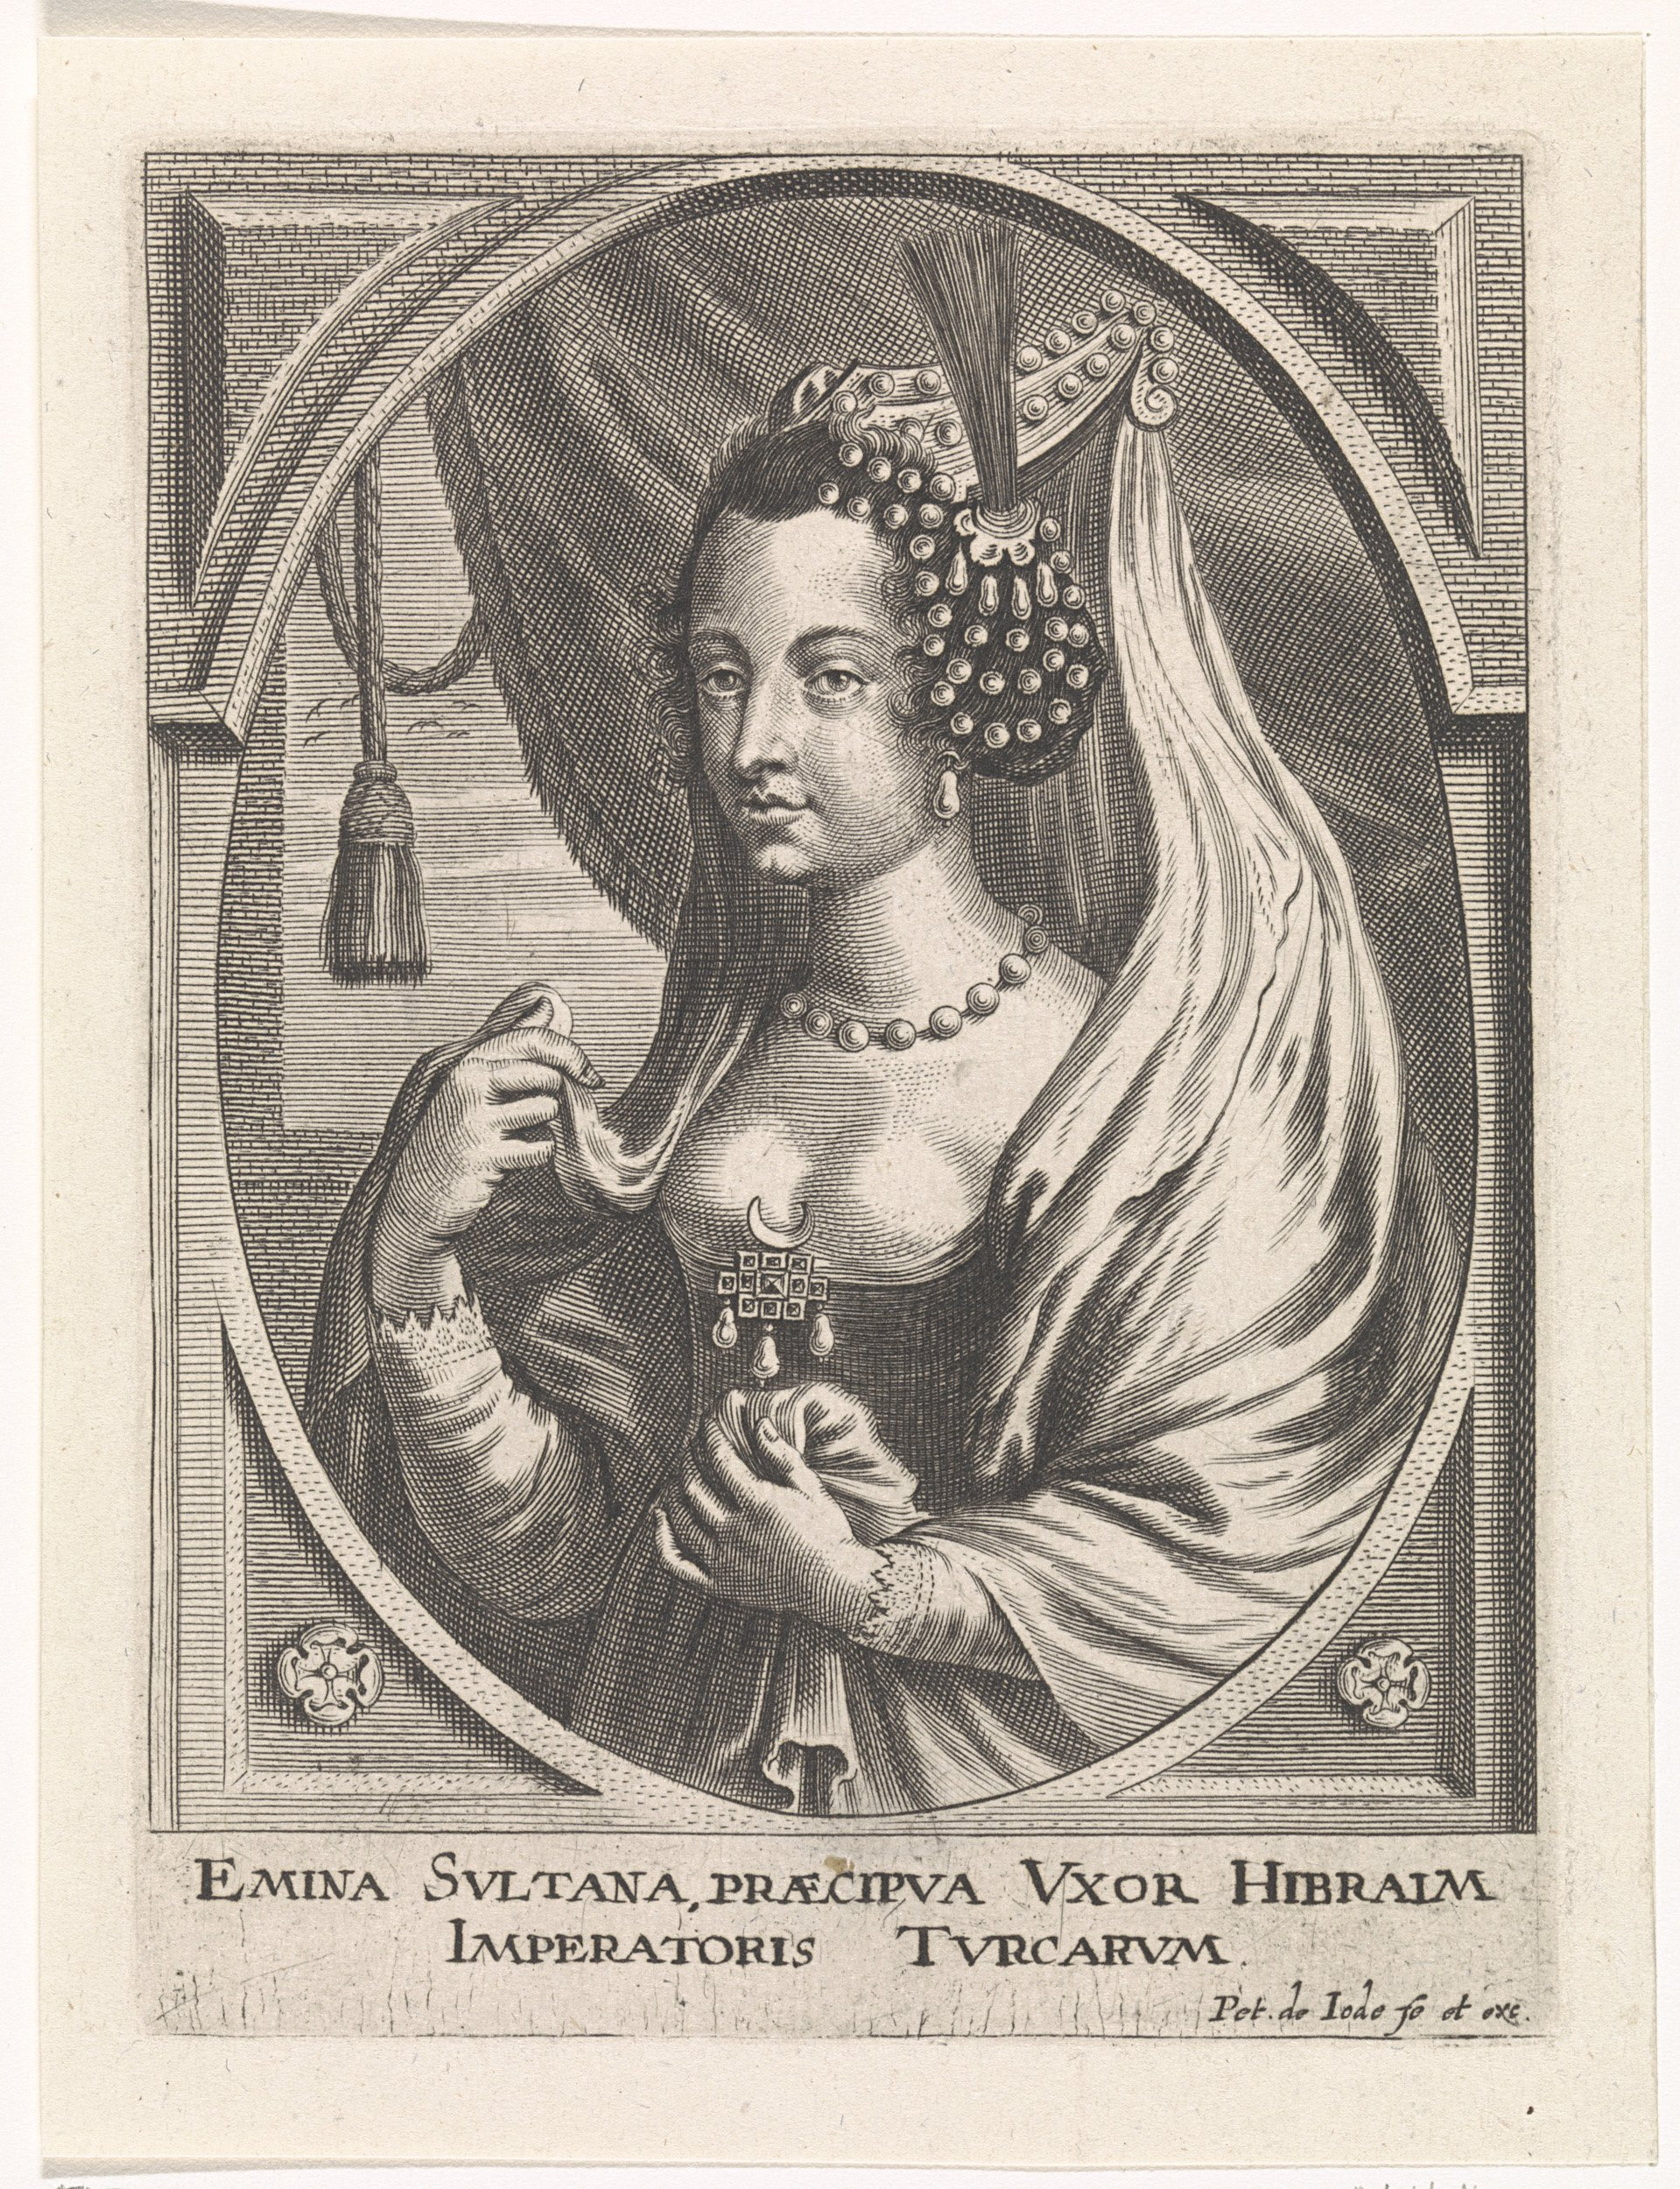 https://upload.wikimedia.org/wikipedia/commons/f/f7/Emina_Sultan.jpeg